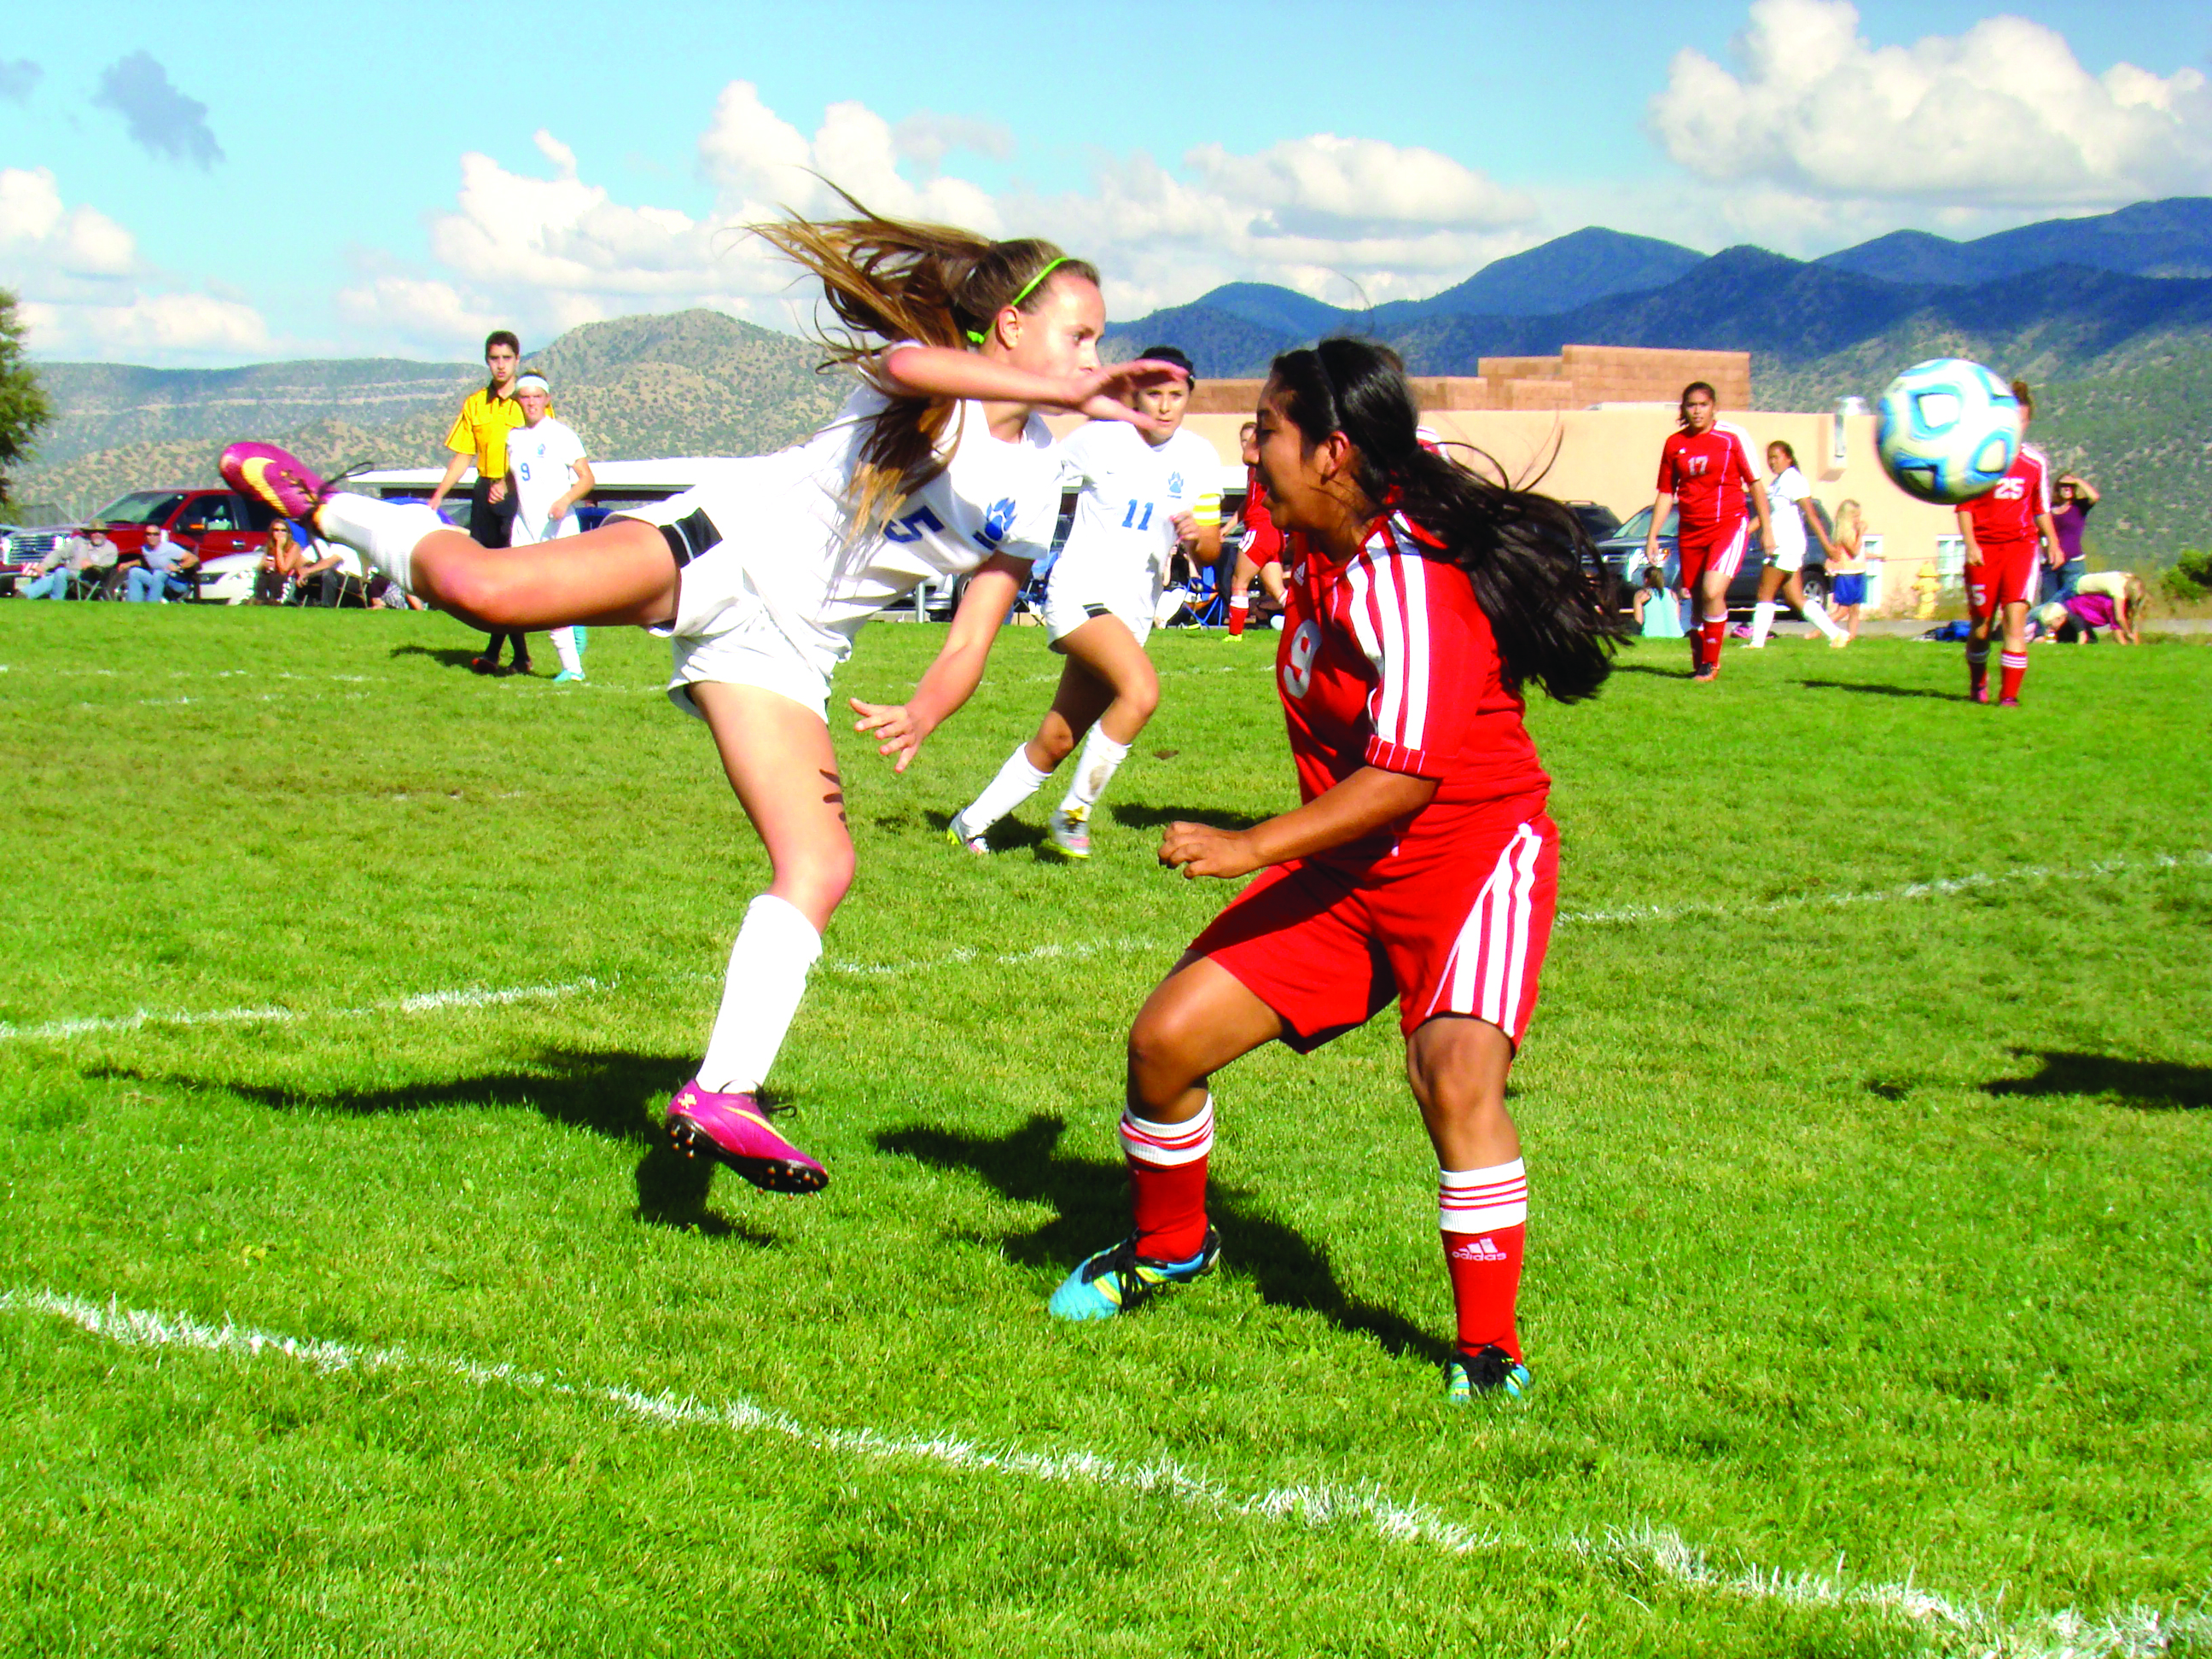 East Mountain's Mia Santistevan putting her whole body into a shot in Tuesday's victory over Bernalillo. For story and more sports, see page 11. Photo by G. Demarest.